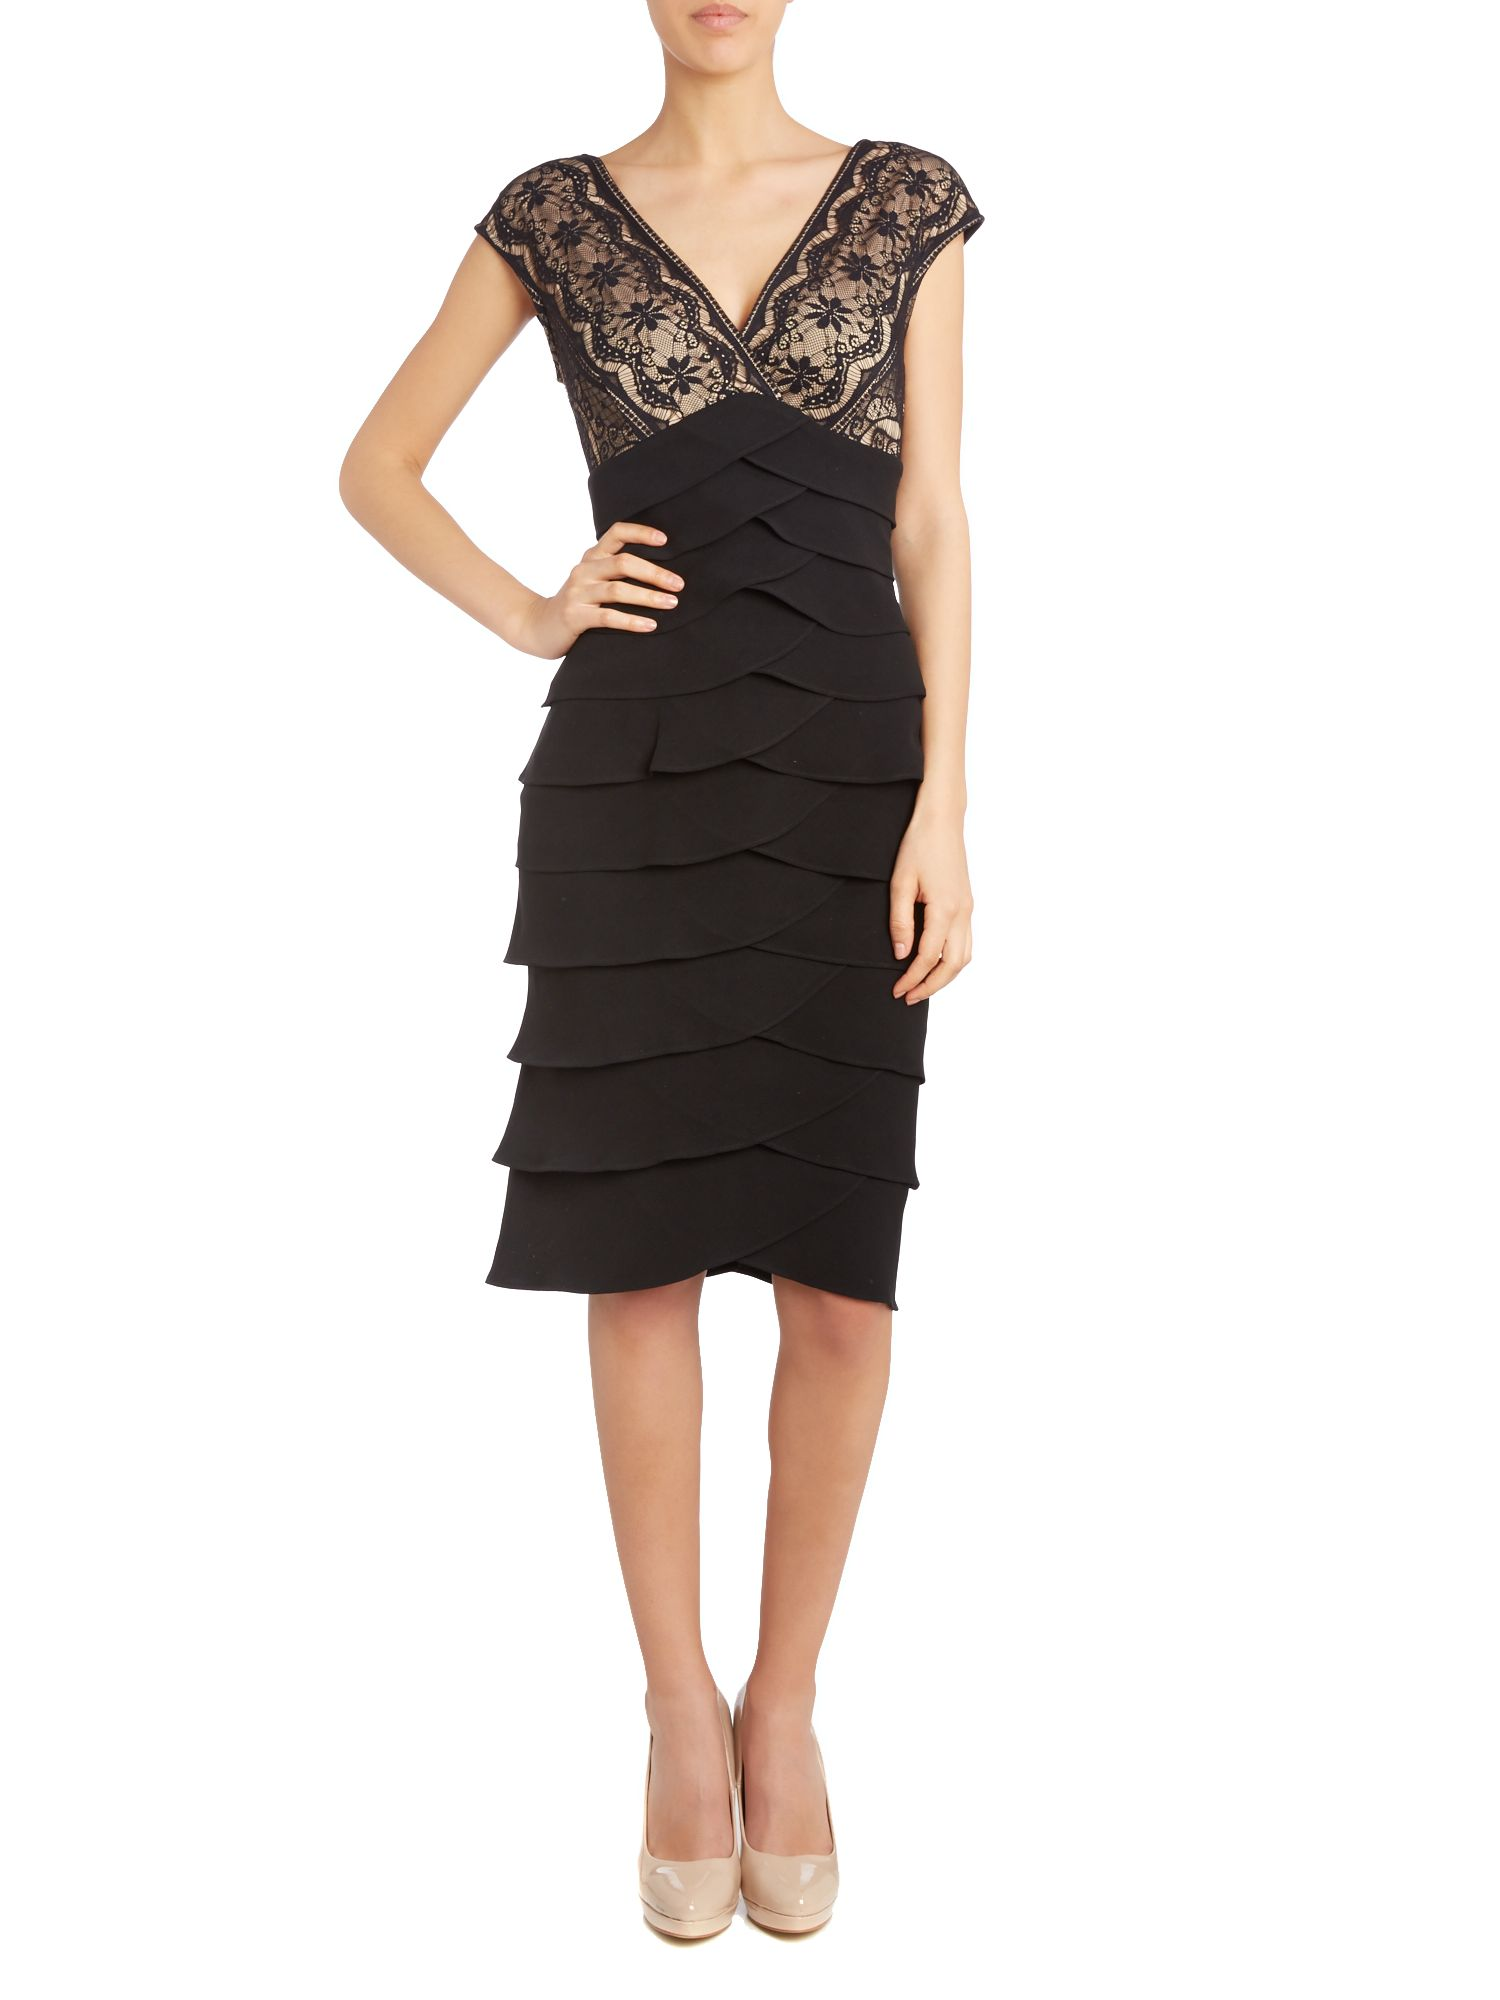 Tiered jersey dress with embroidered bodice